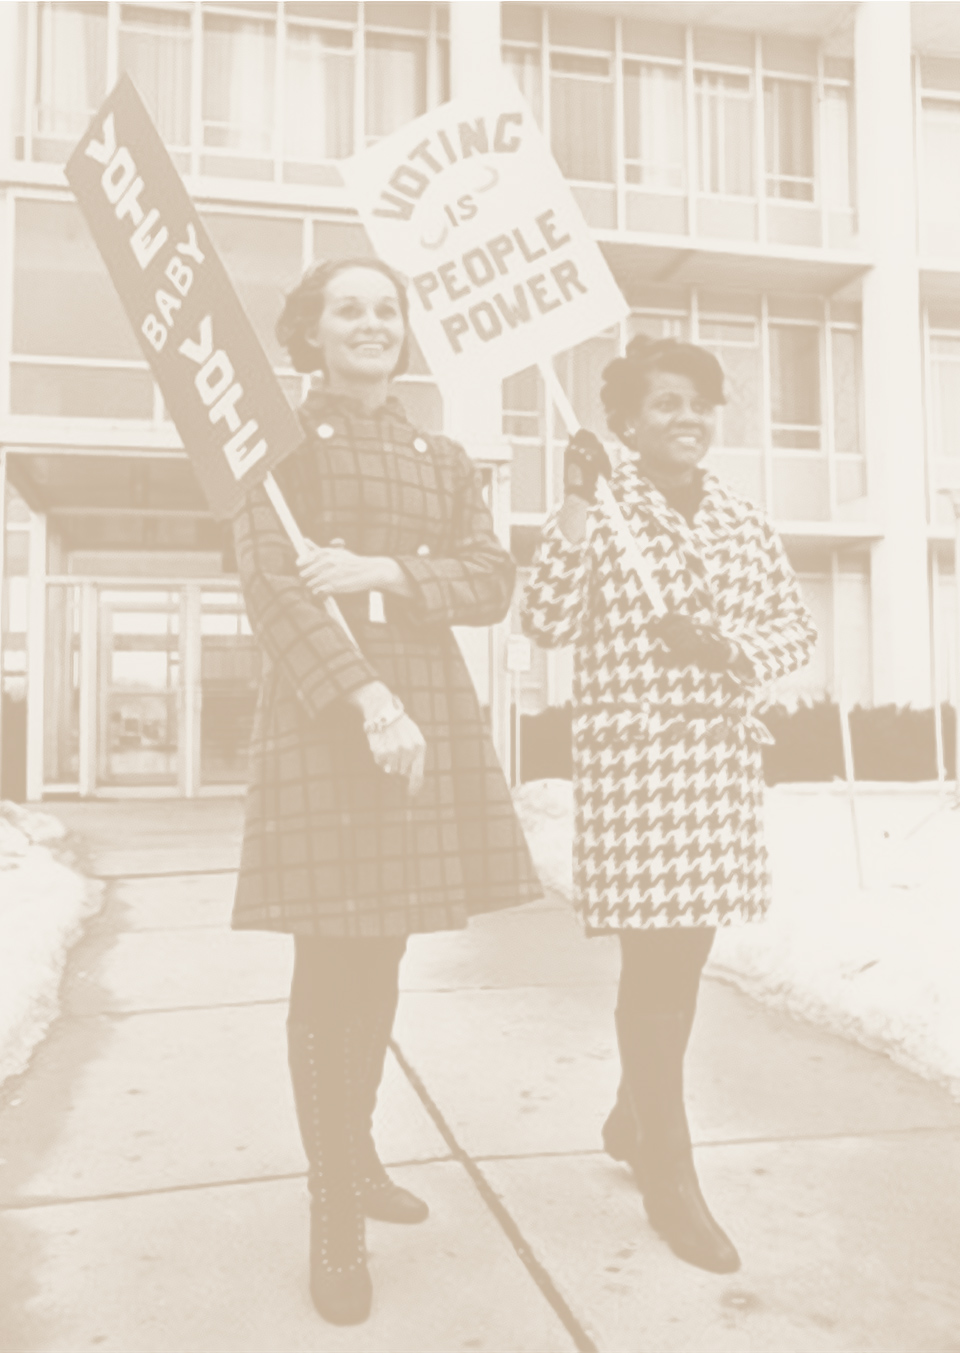 Two women encouraging voting with picket signs.